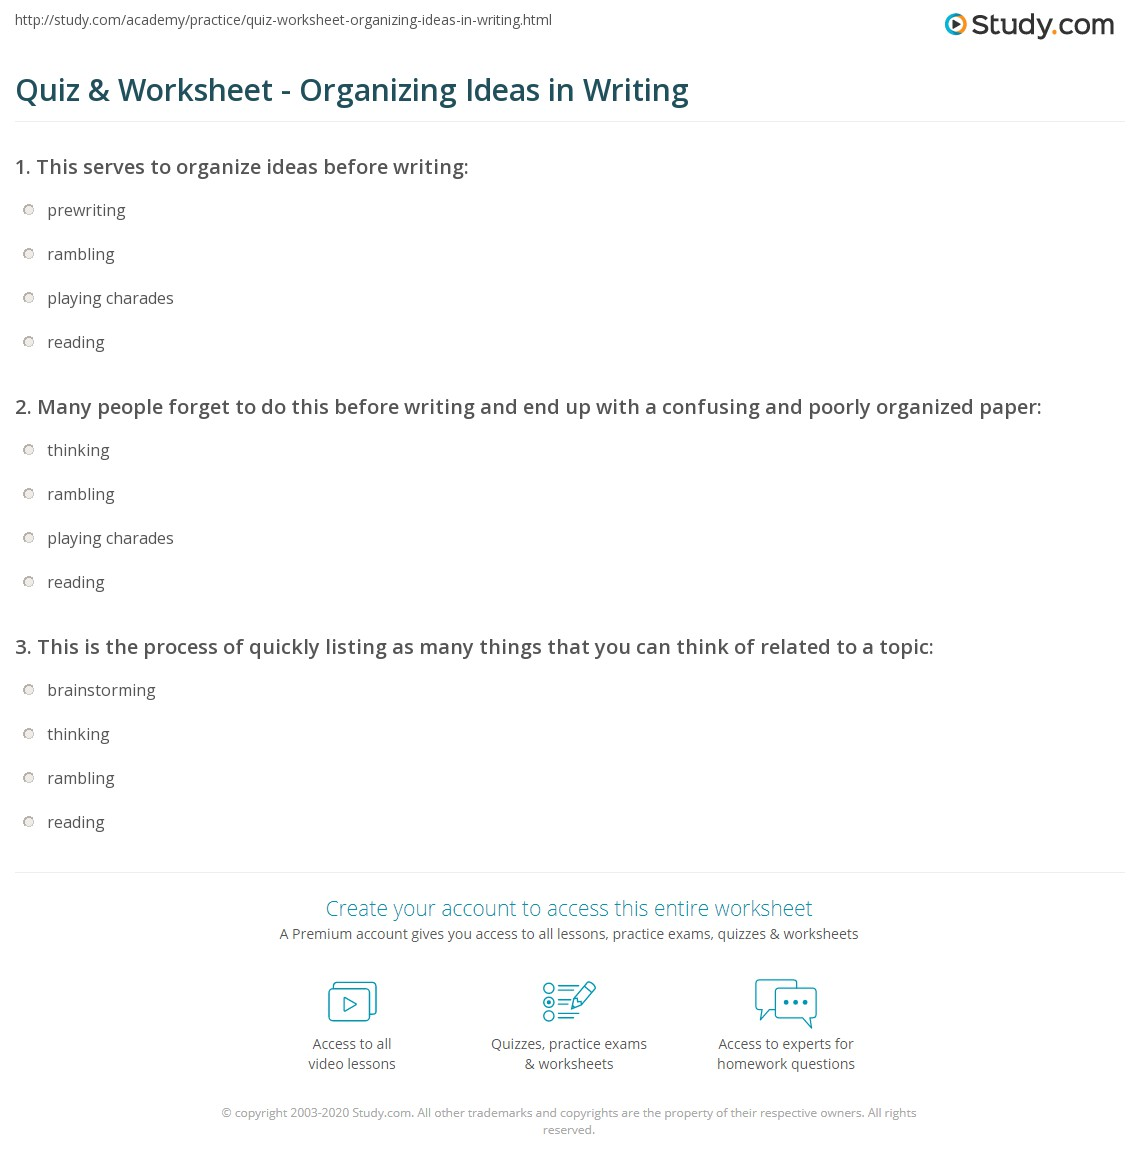 Quiz & Worksheet - Organizing Ideas in Writing | Study.com